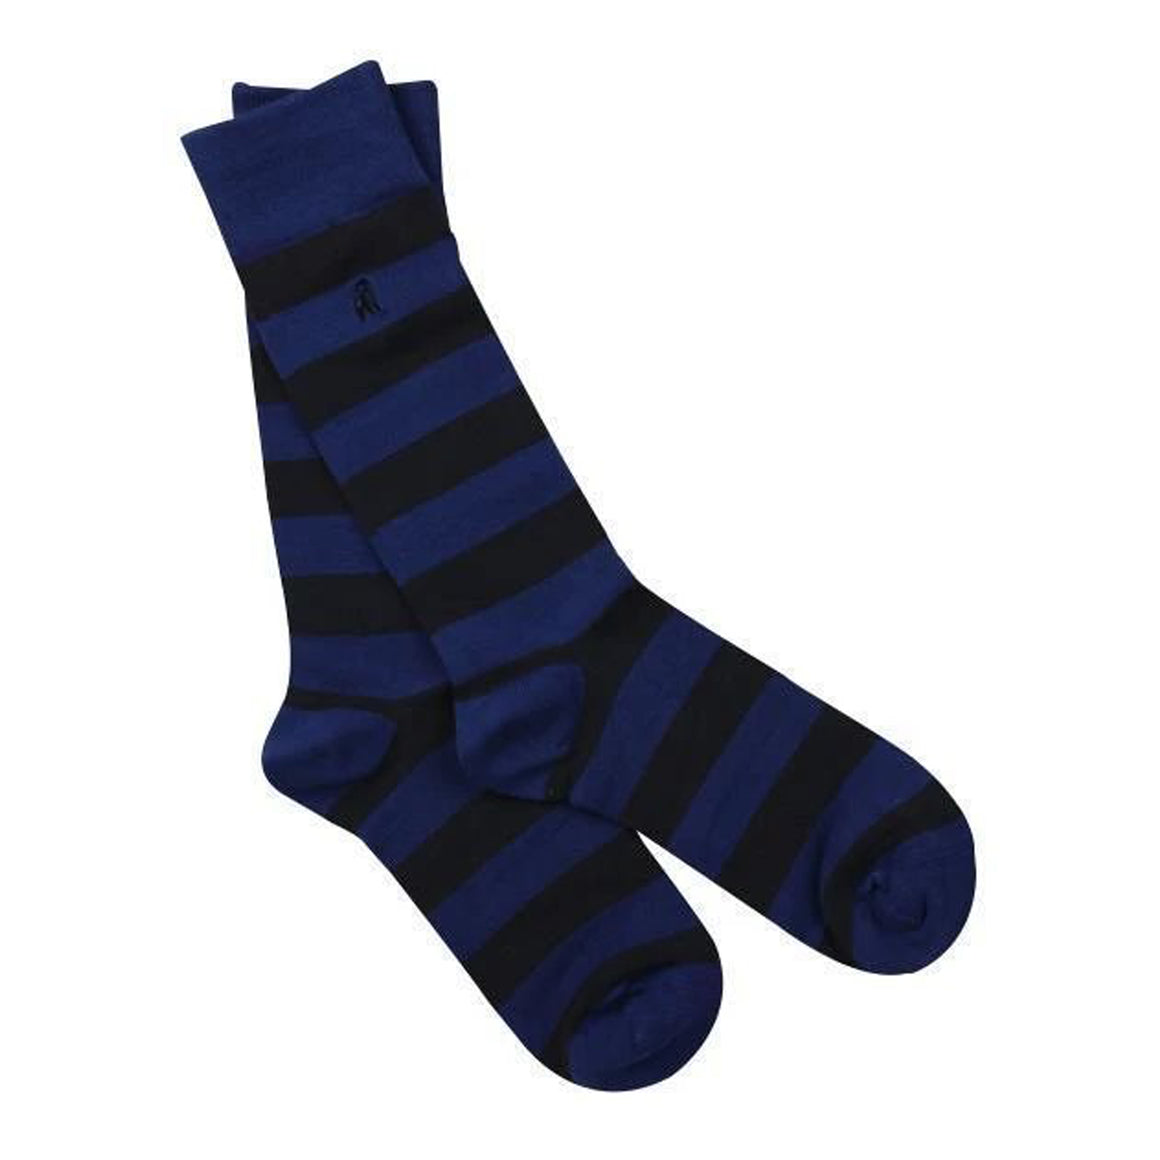 Striped Bamboo Socks for Men in Charcoal